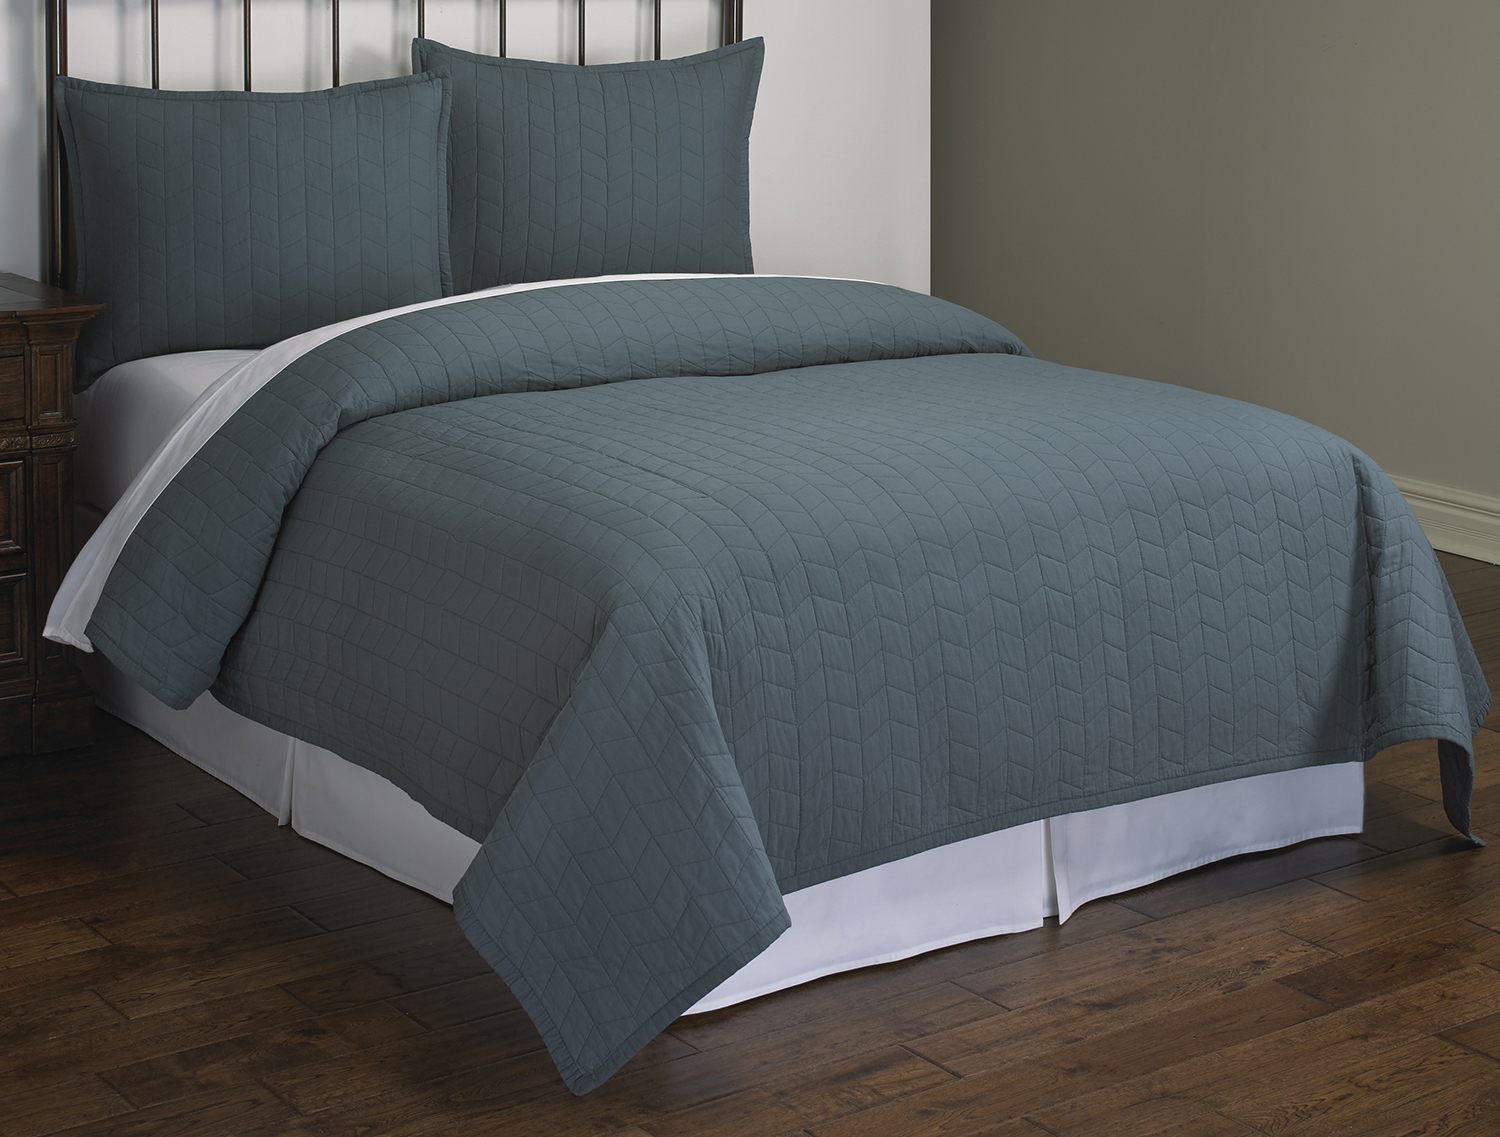 Ashton Teal by Riverbrook Home Bedding